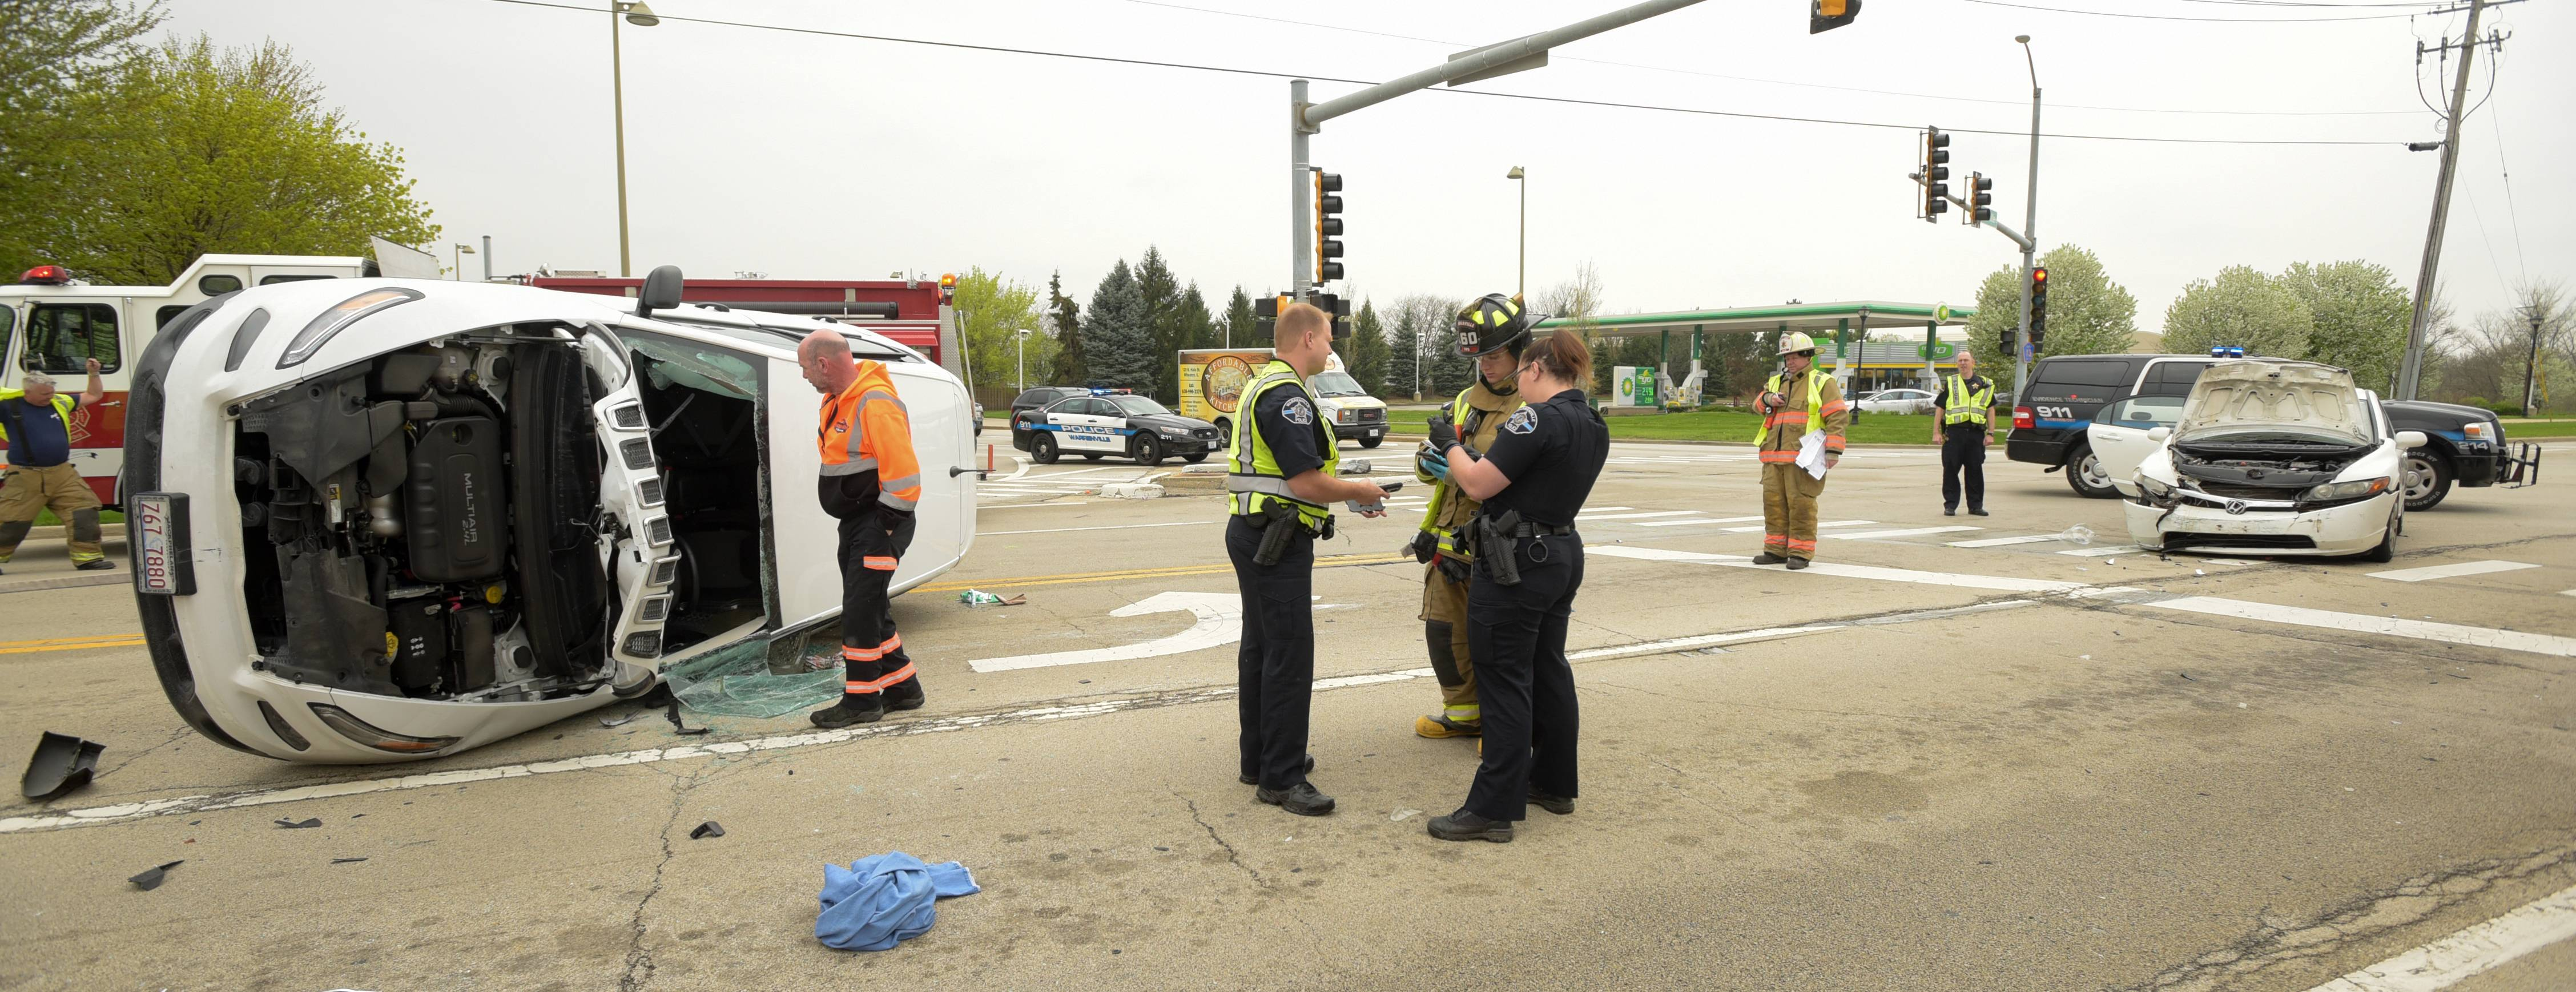 Seven people were injured in the crash Wednesday at Winfield and Warrenville roads in Warrenville.